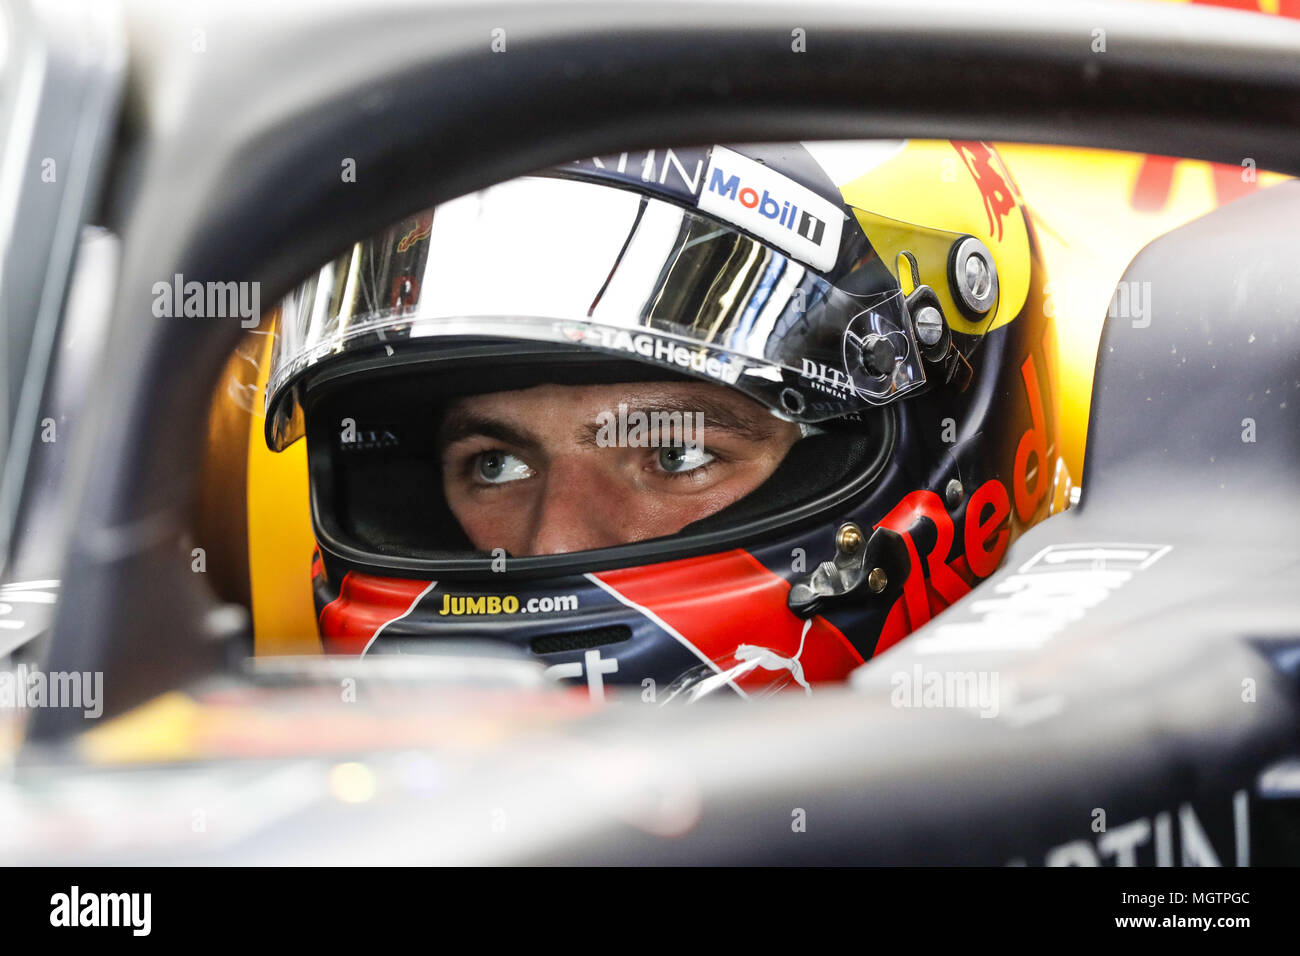 Verstappen Max Ned Aston Martin Red Bull Tag Heuer Rb14 Portrait During The 2018 Formula One